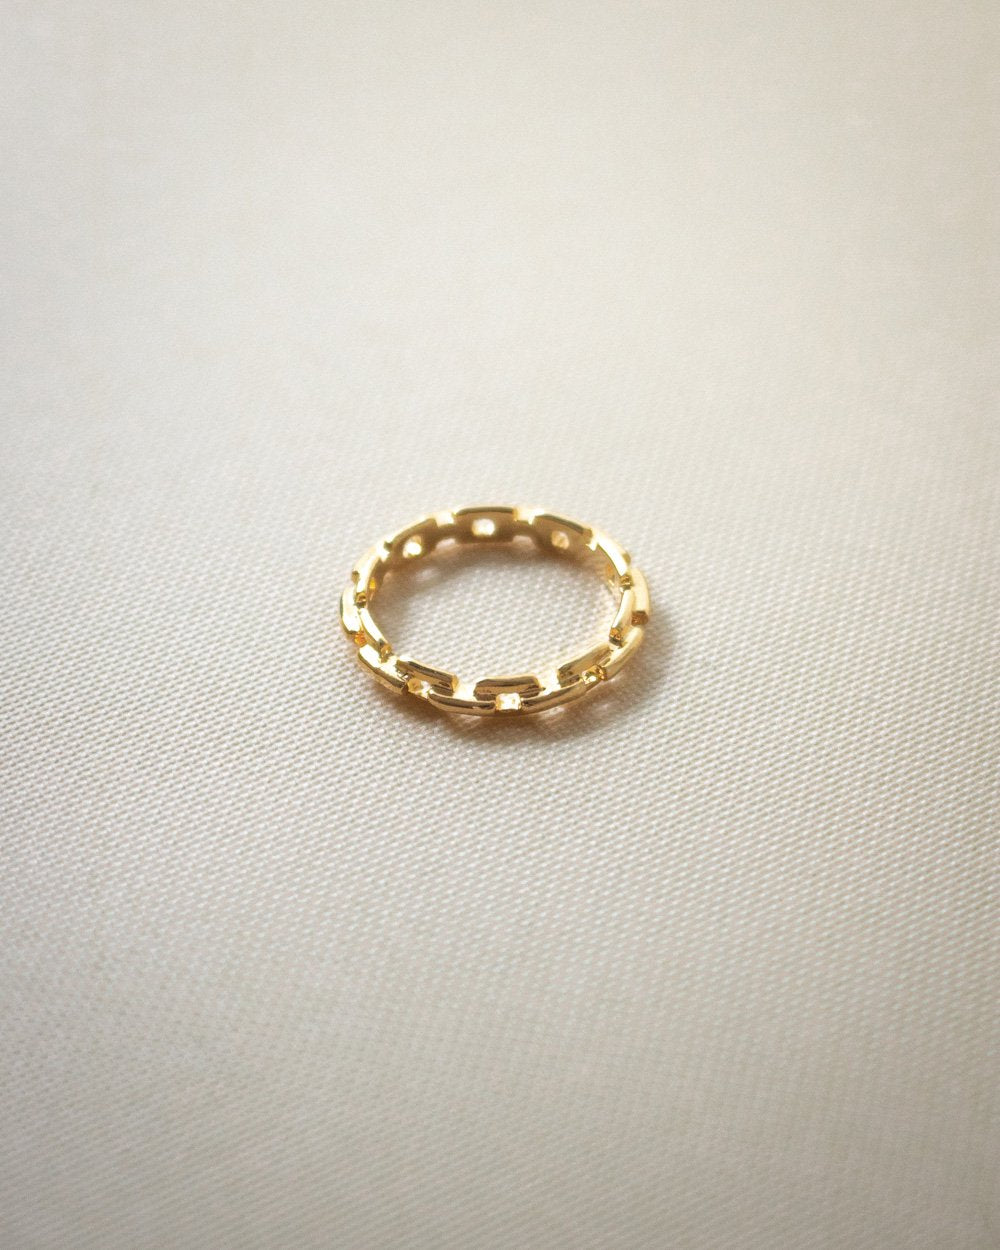 Luxor ring in gold by The Hexad Jewelry